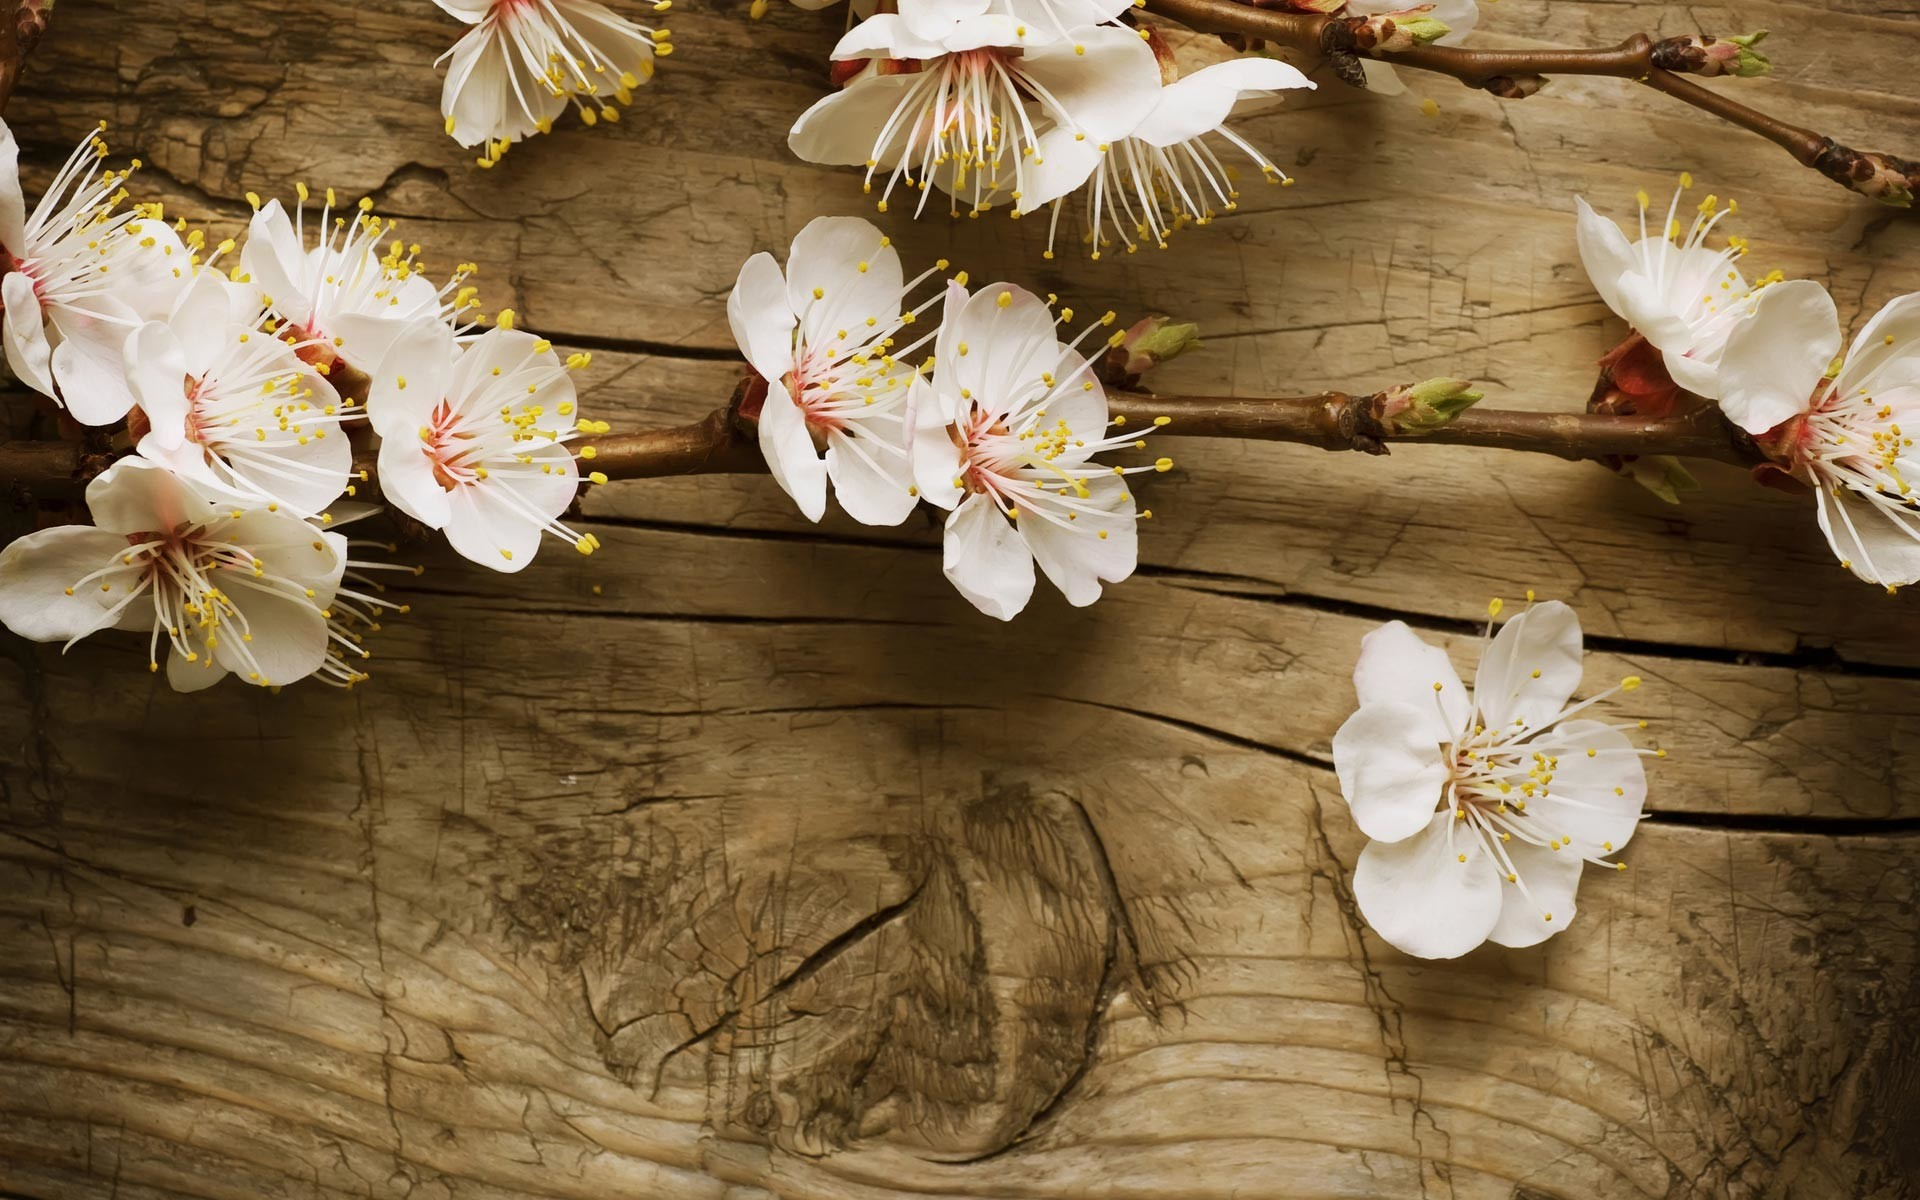 hd spring wallpapers for desktop ·①